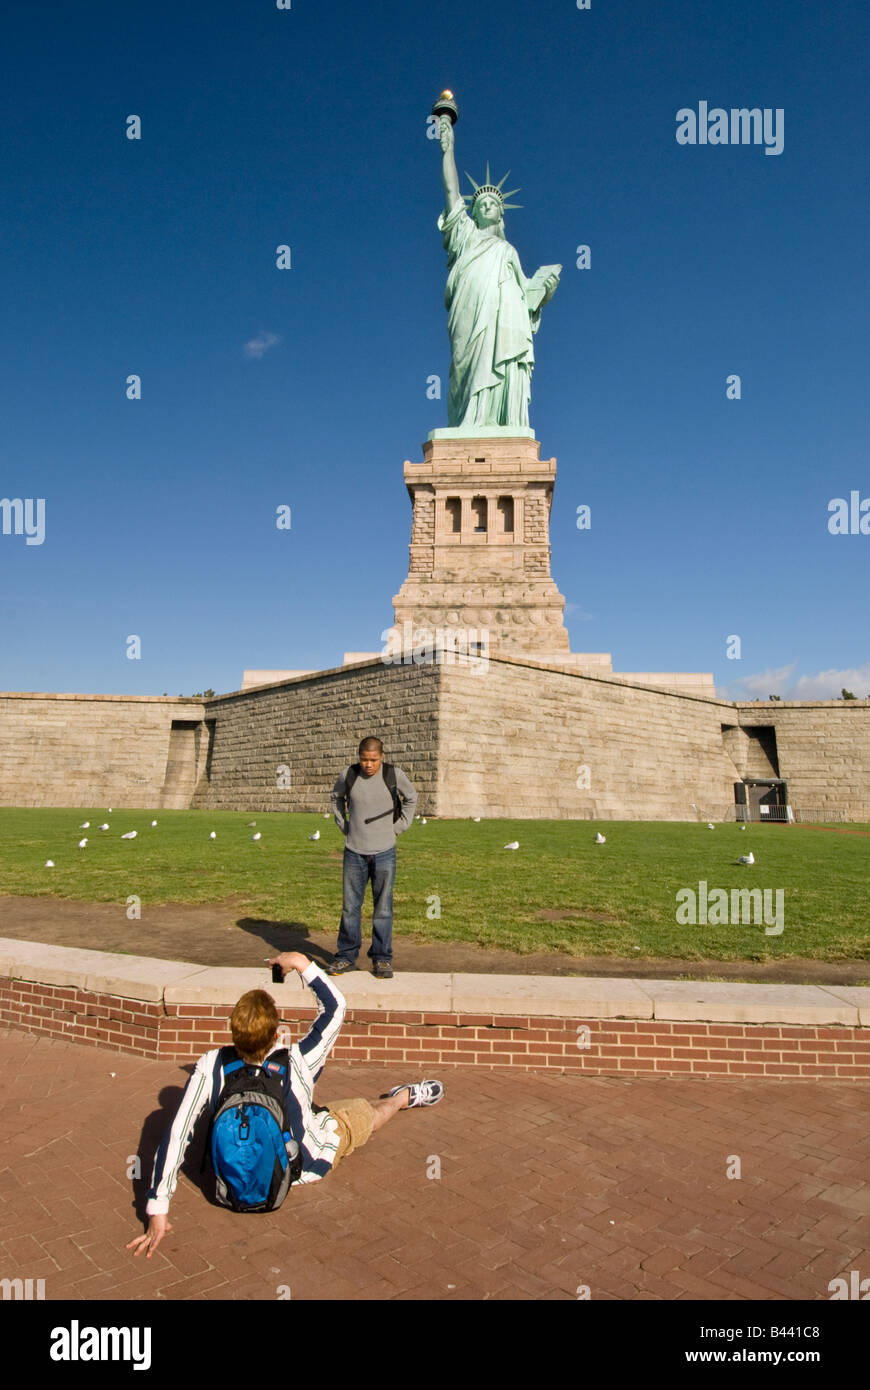 Tourists taking pictures at the Statue of Liberty in New York City - Stock Image